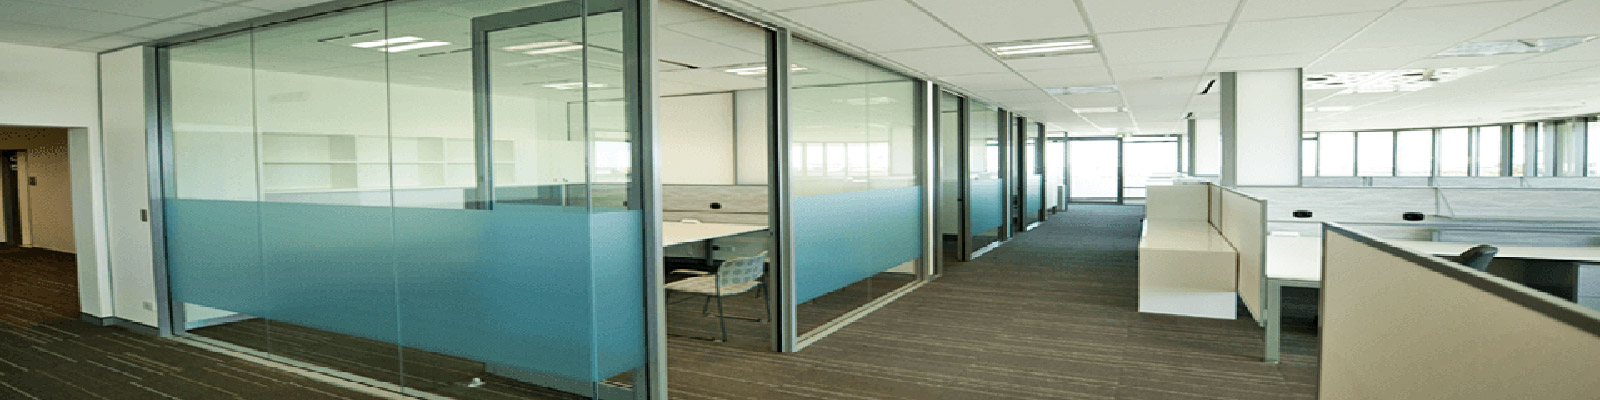 Office Aluminium Cabin Manufacturer in Gurgaon